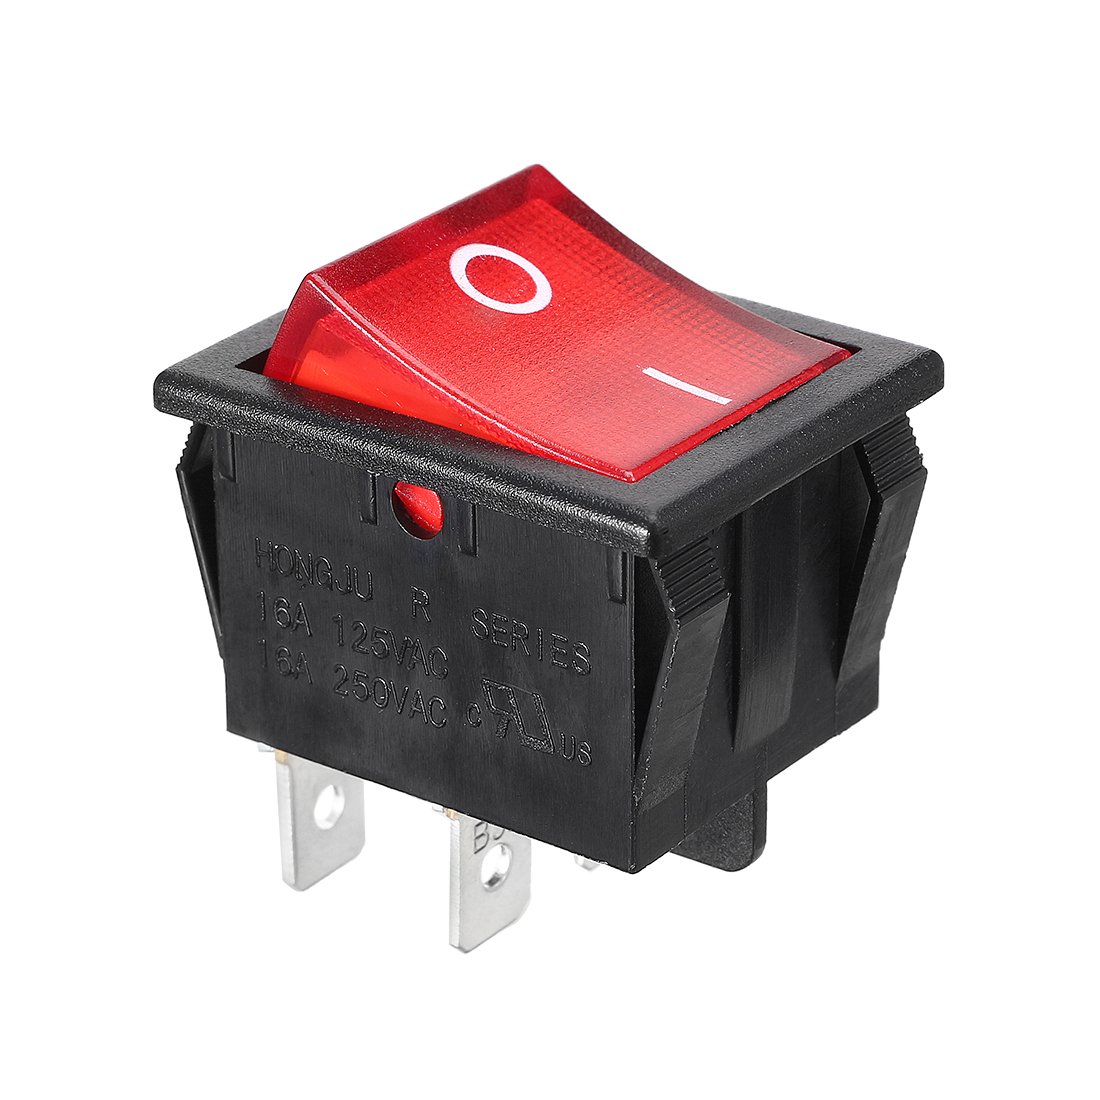 Red Light Illuminated DPST ON/OFF Snap In Rocker Switch 16A 250V AC UL Listed